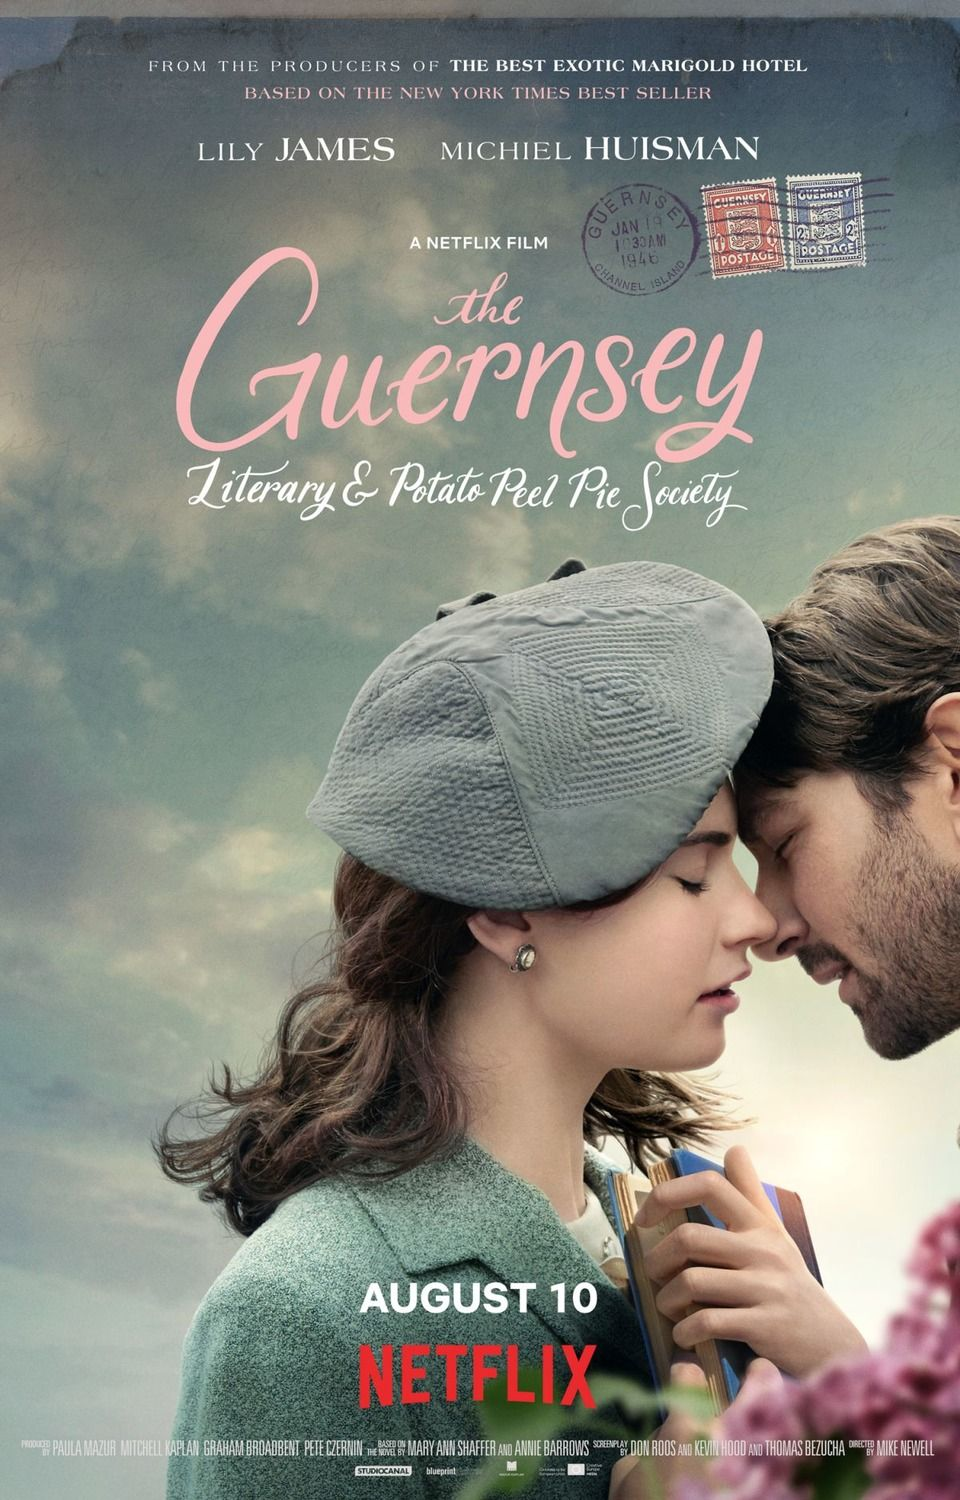 The Guernsey Literary and Potato Peel Pie Society (#6 of 6)